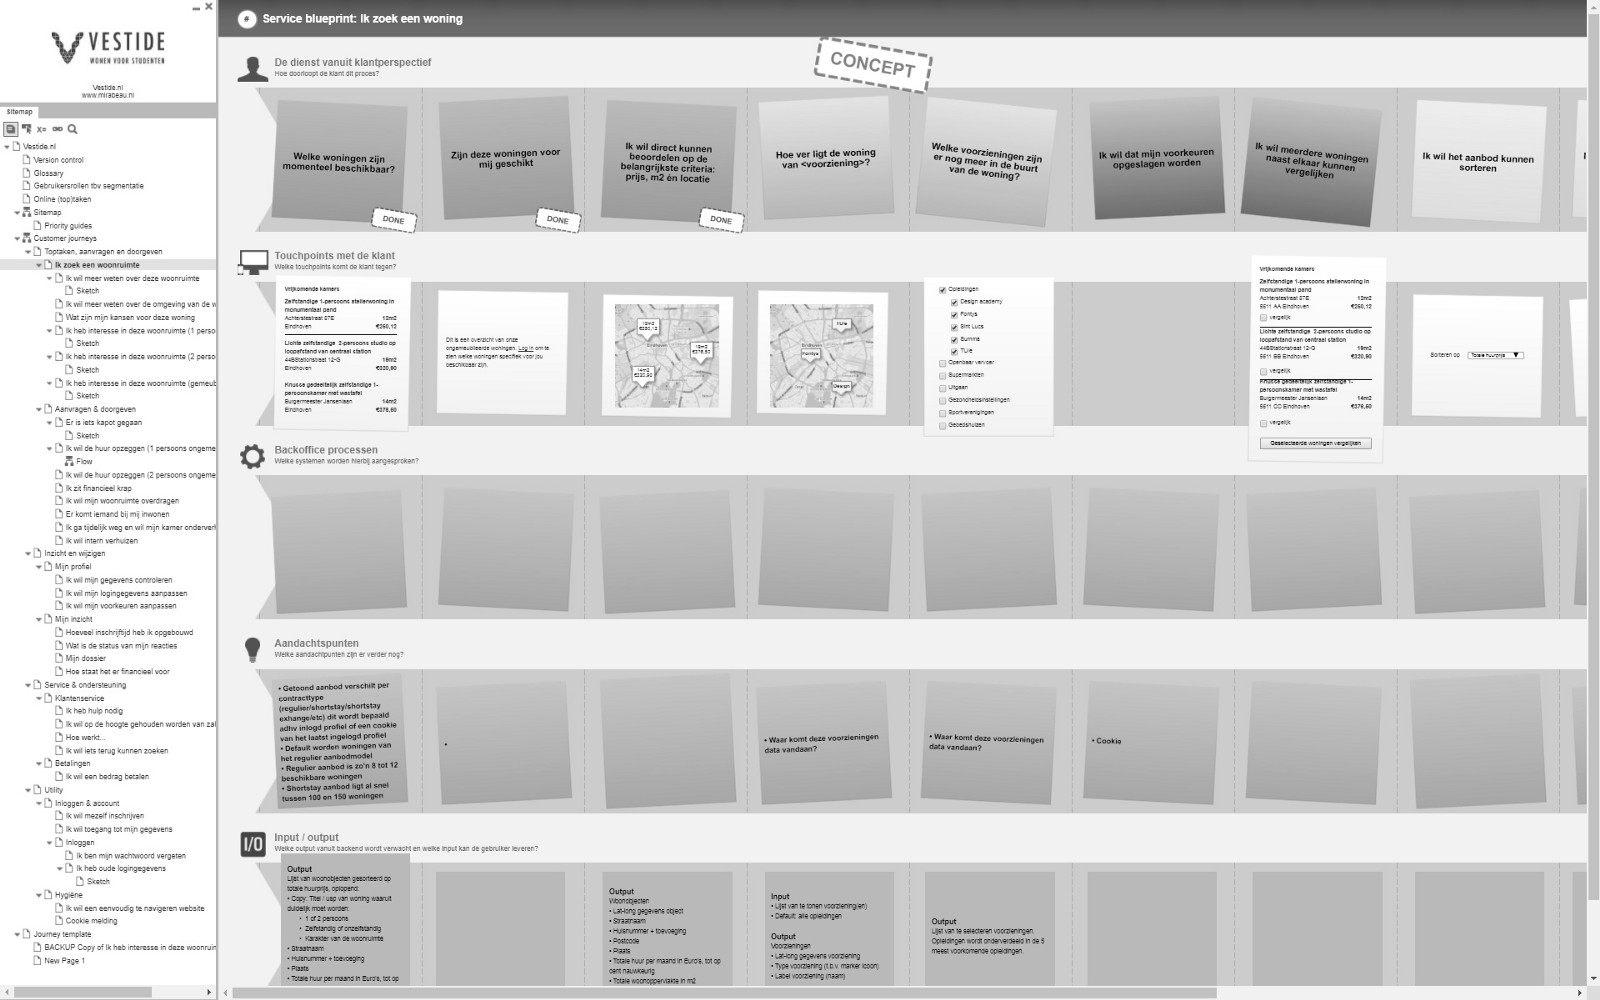 Service blueprinting cynthia risse medium a snapshot of a service blueprint about the journey of a house hunter for vestide read more here malvernweather Choice Image